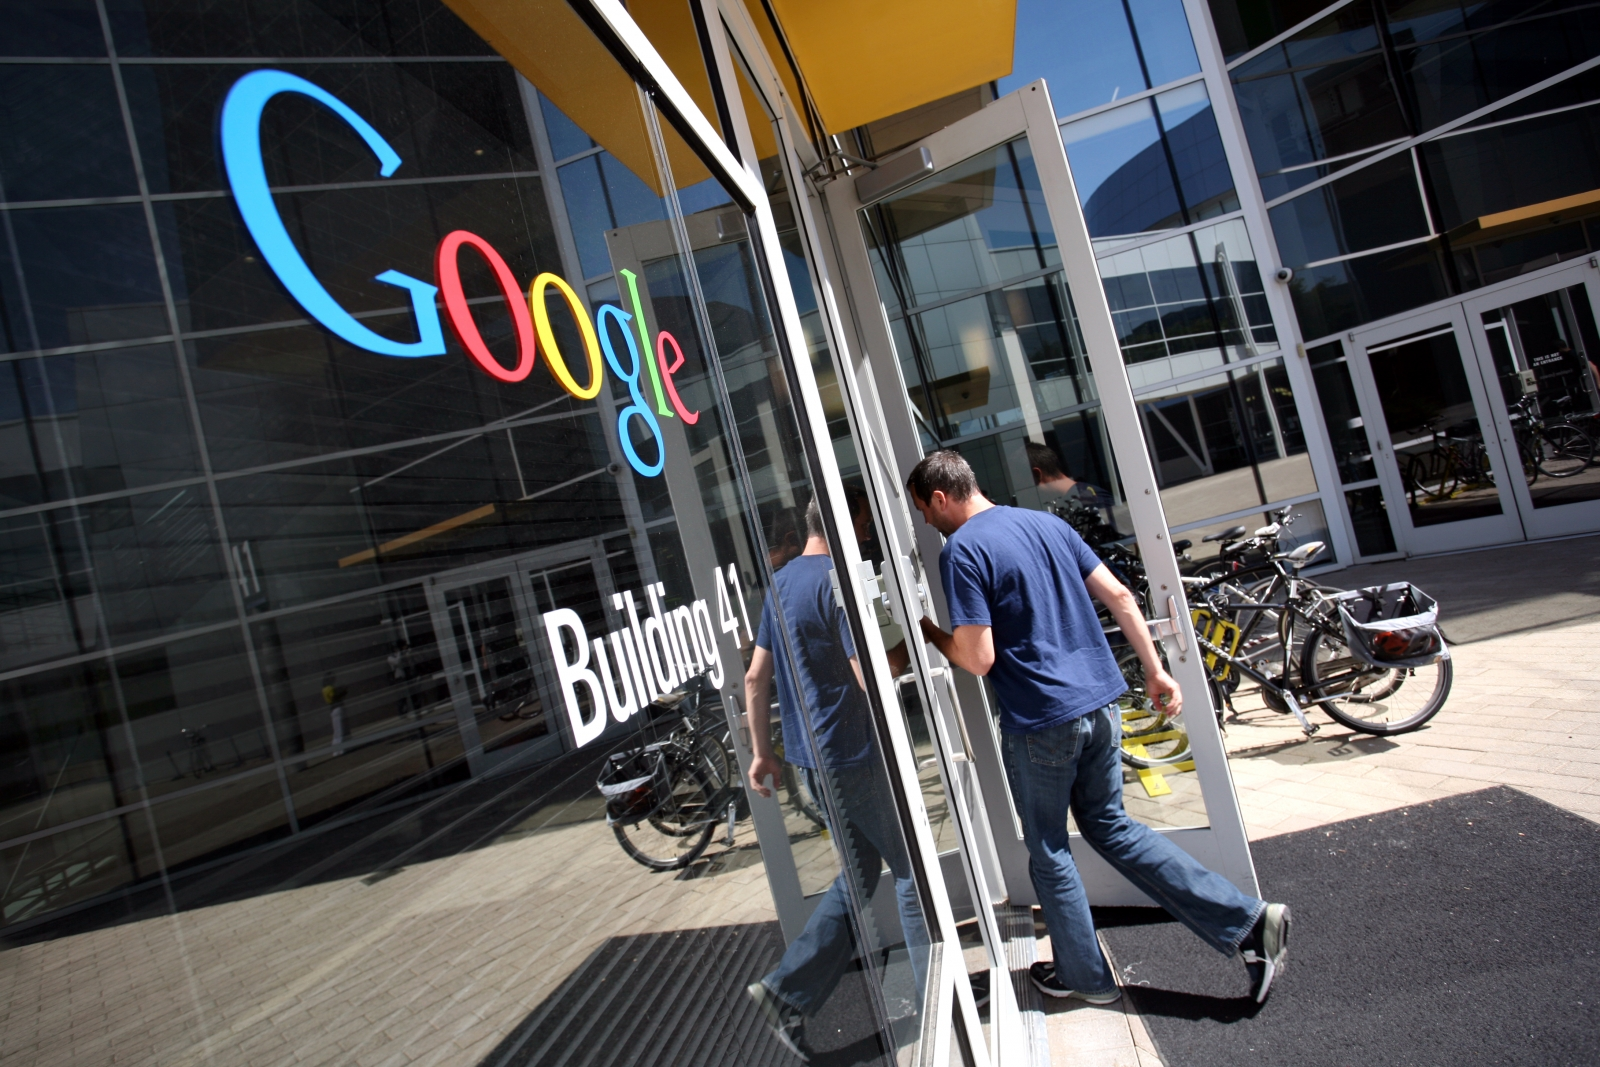 Google becomes world's most valuable brand